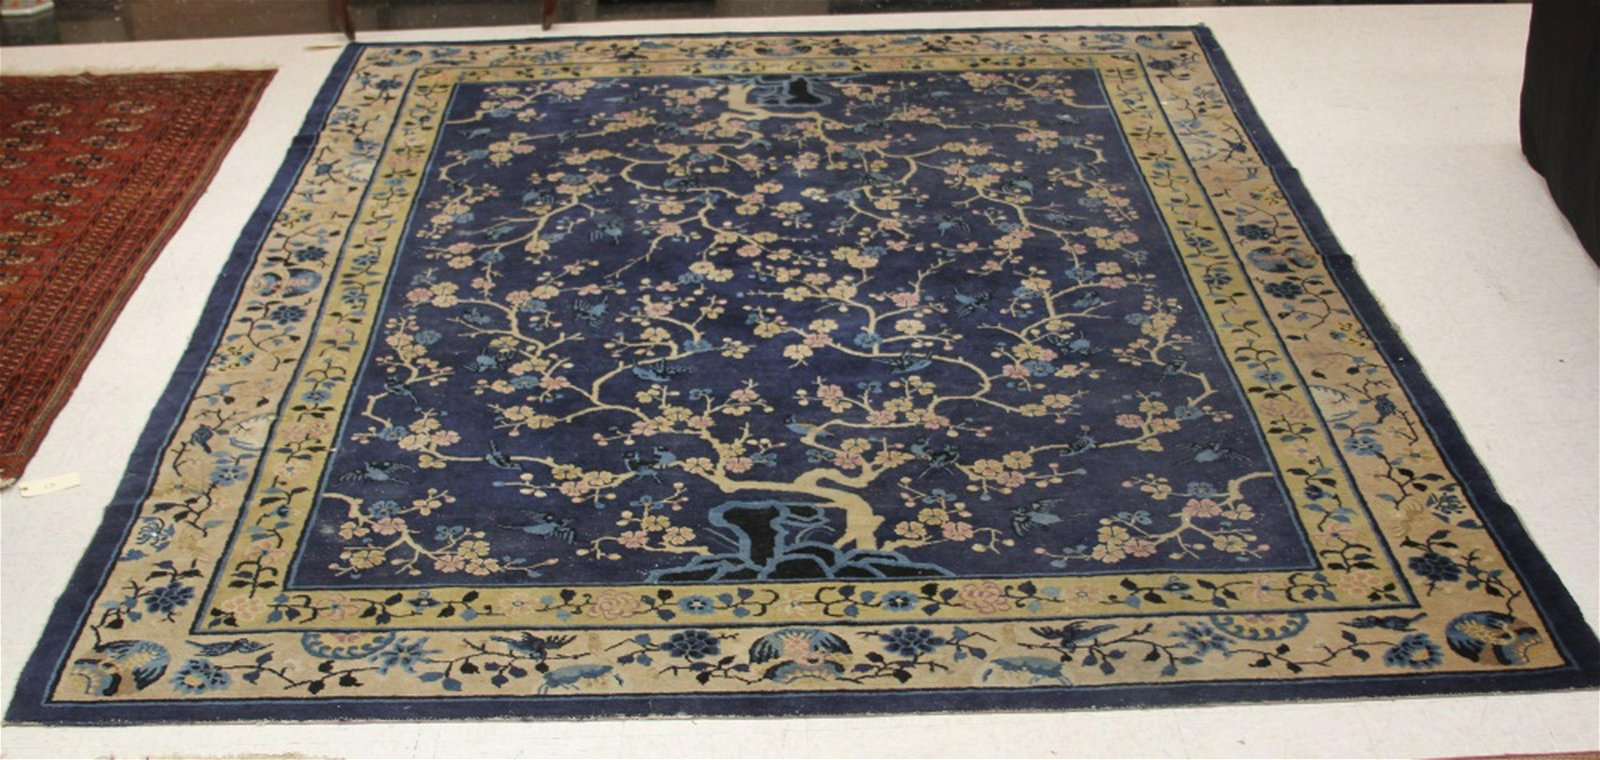 EARLY CHINESE ROOMSIZE CARPET